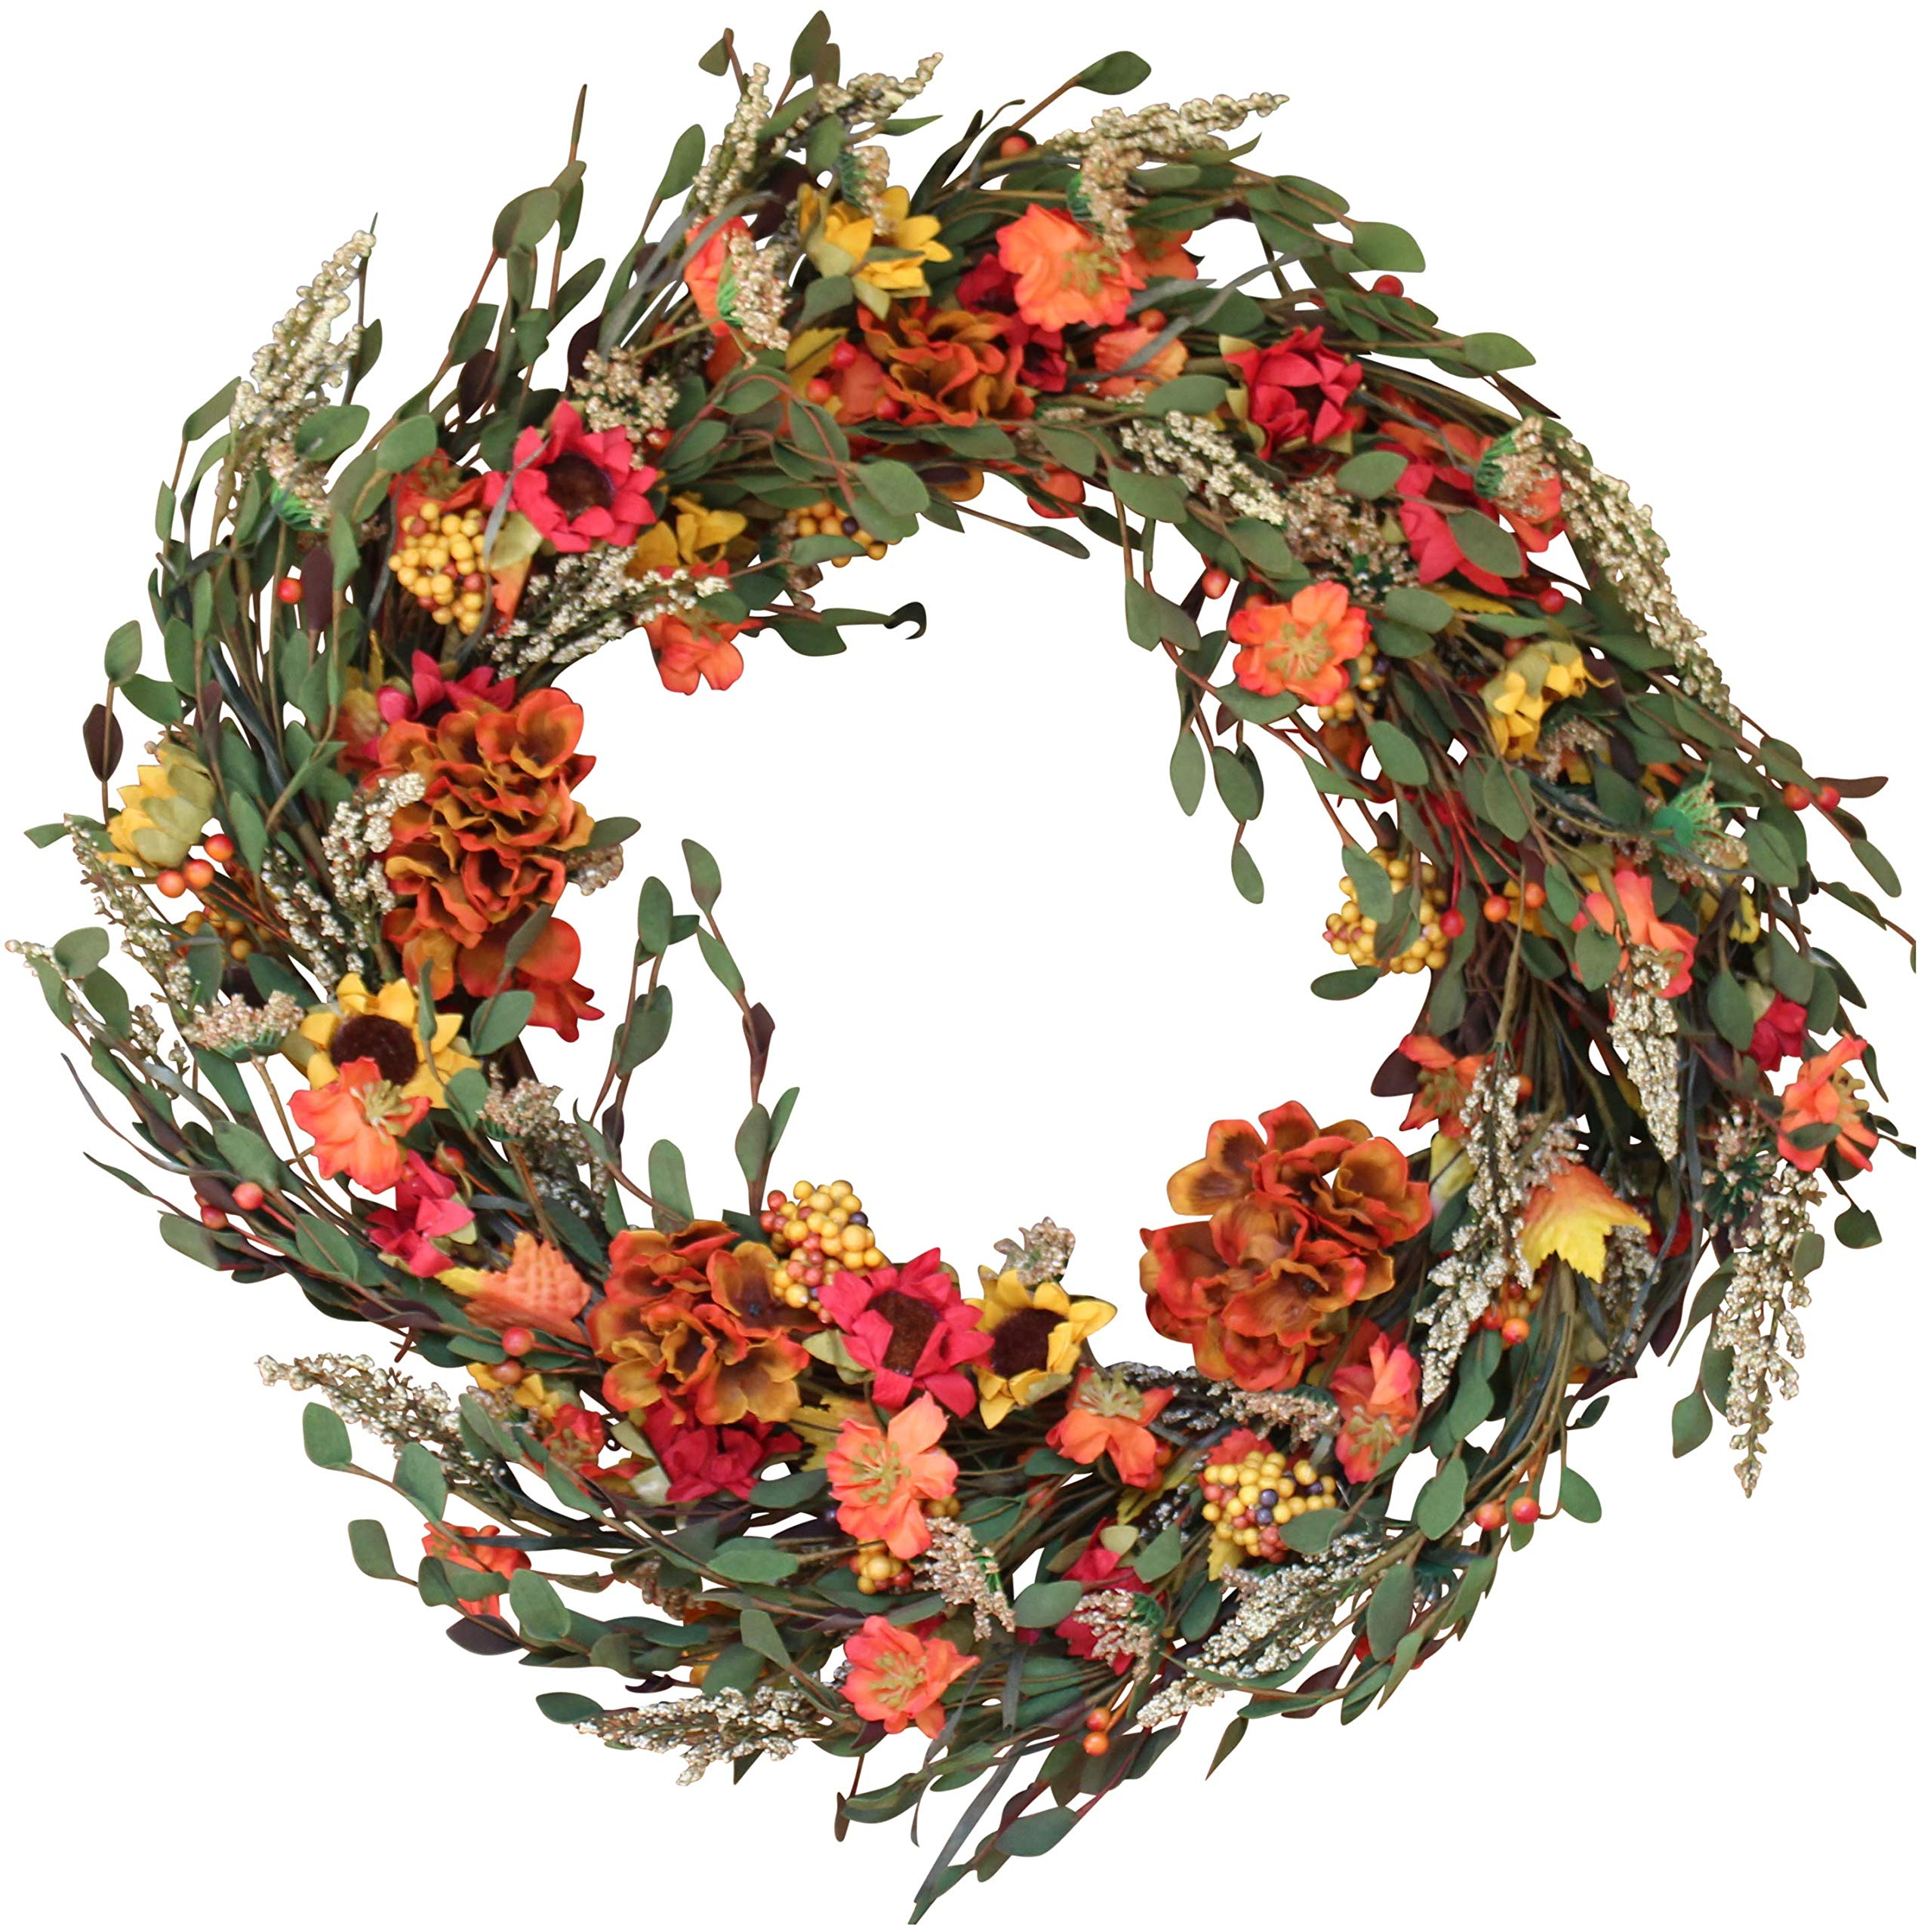 Nashua Blossom Fall Front Door Wreath 22 Inches - Lush and Beautiful Autumn Colors, Approved for Covered Outdoor Use, Beautiful White Gift Box Included by The Wreath Depot